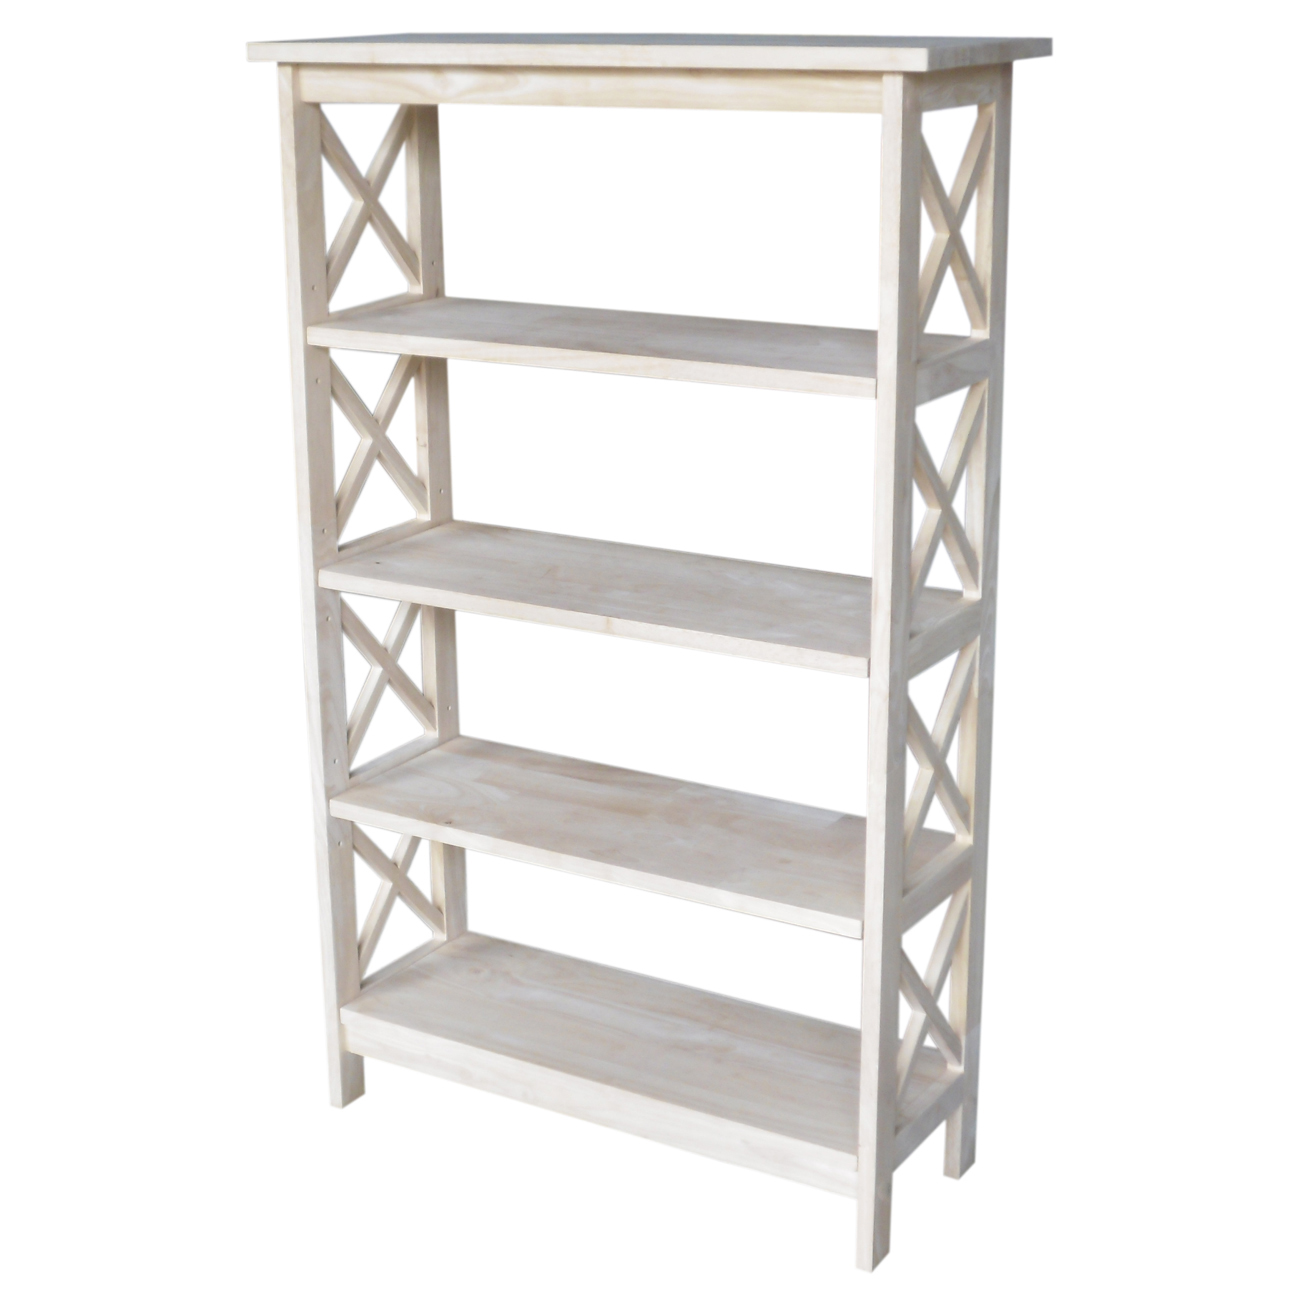 Unfinished X-sided 4 Tier Shelf Unit